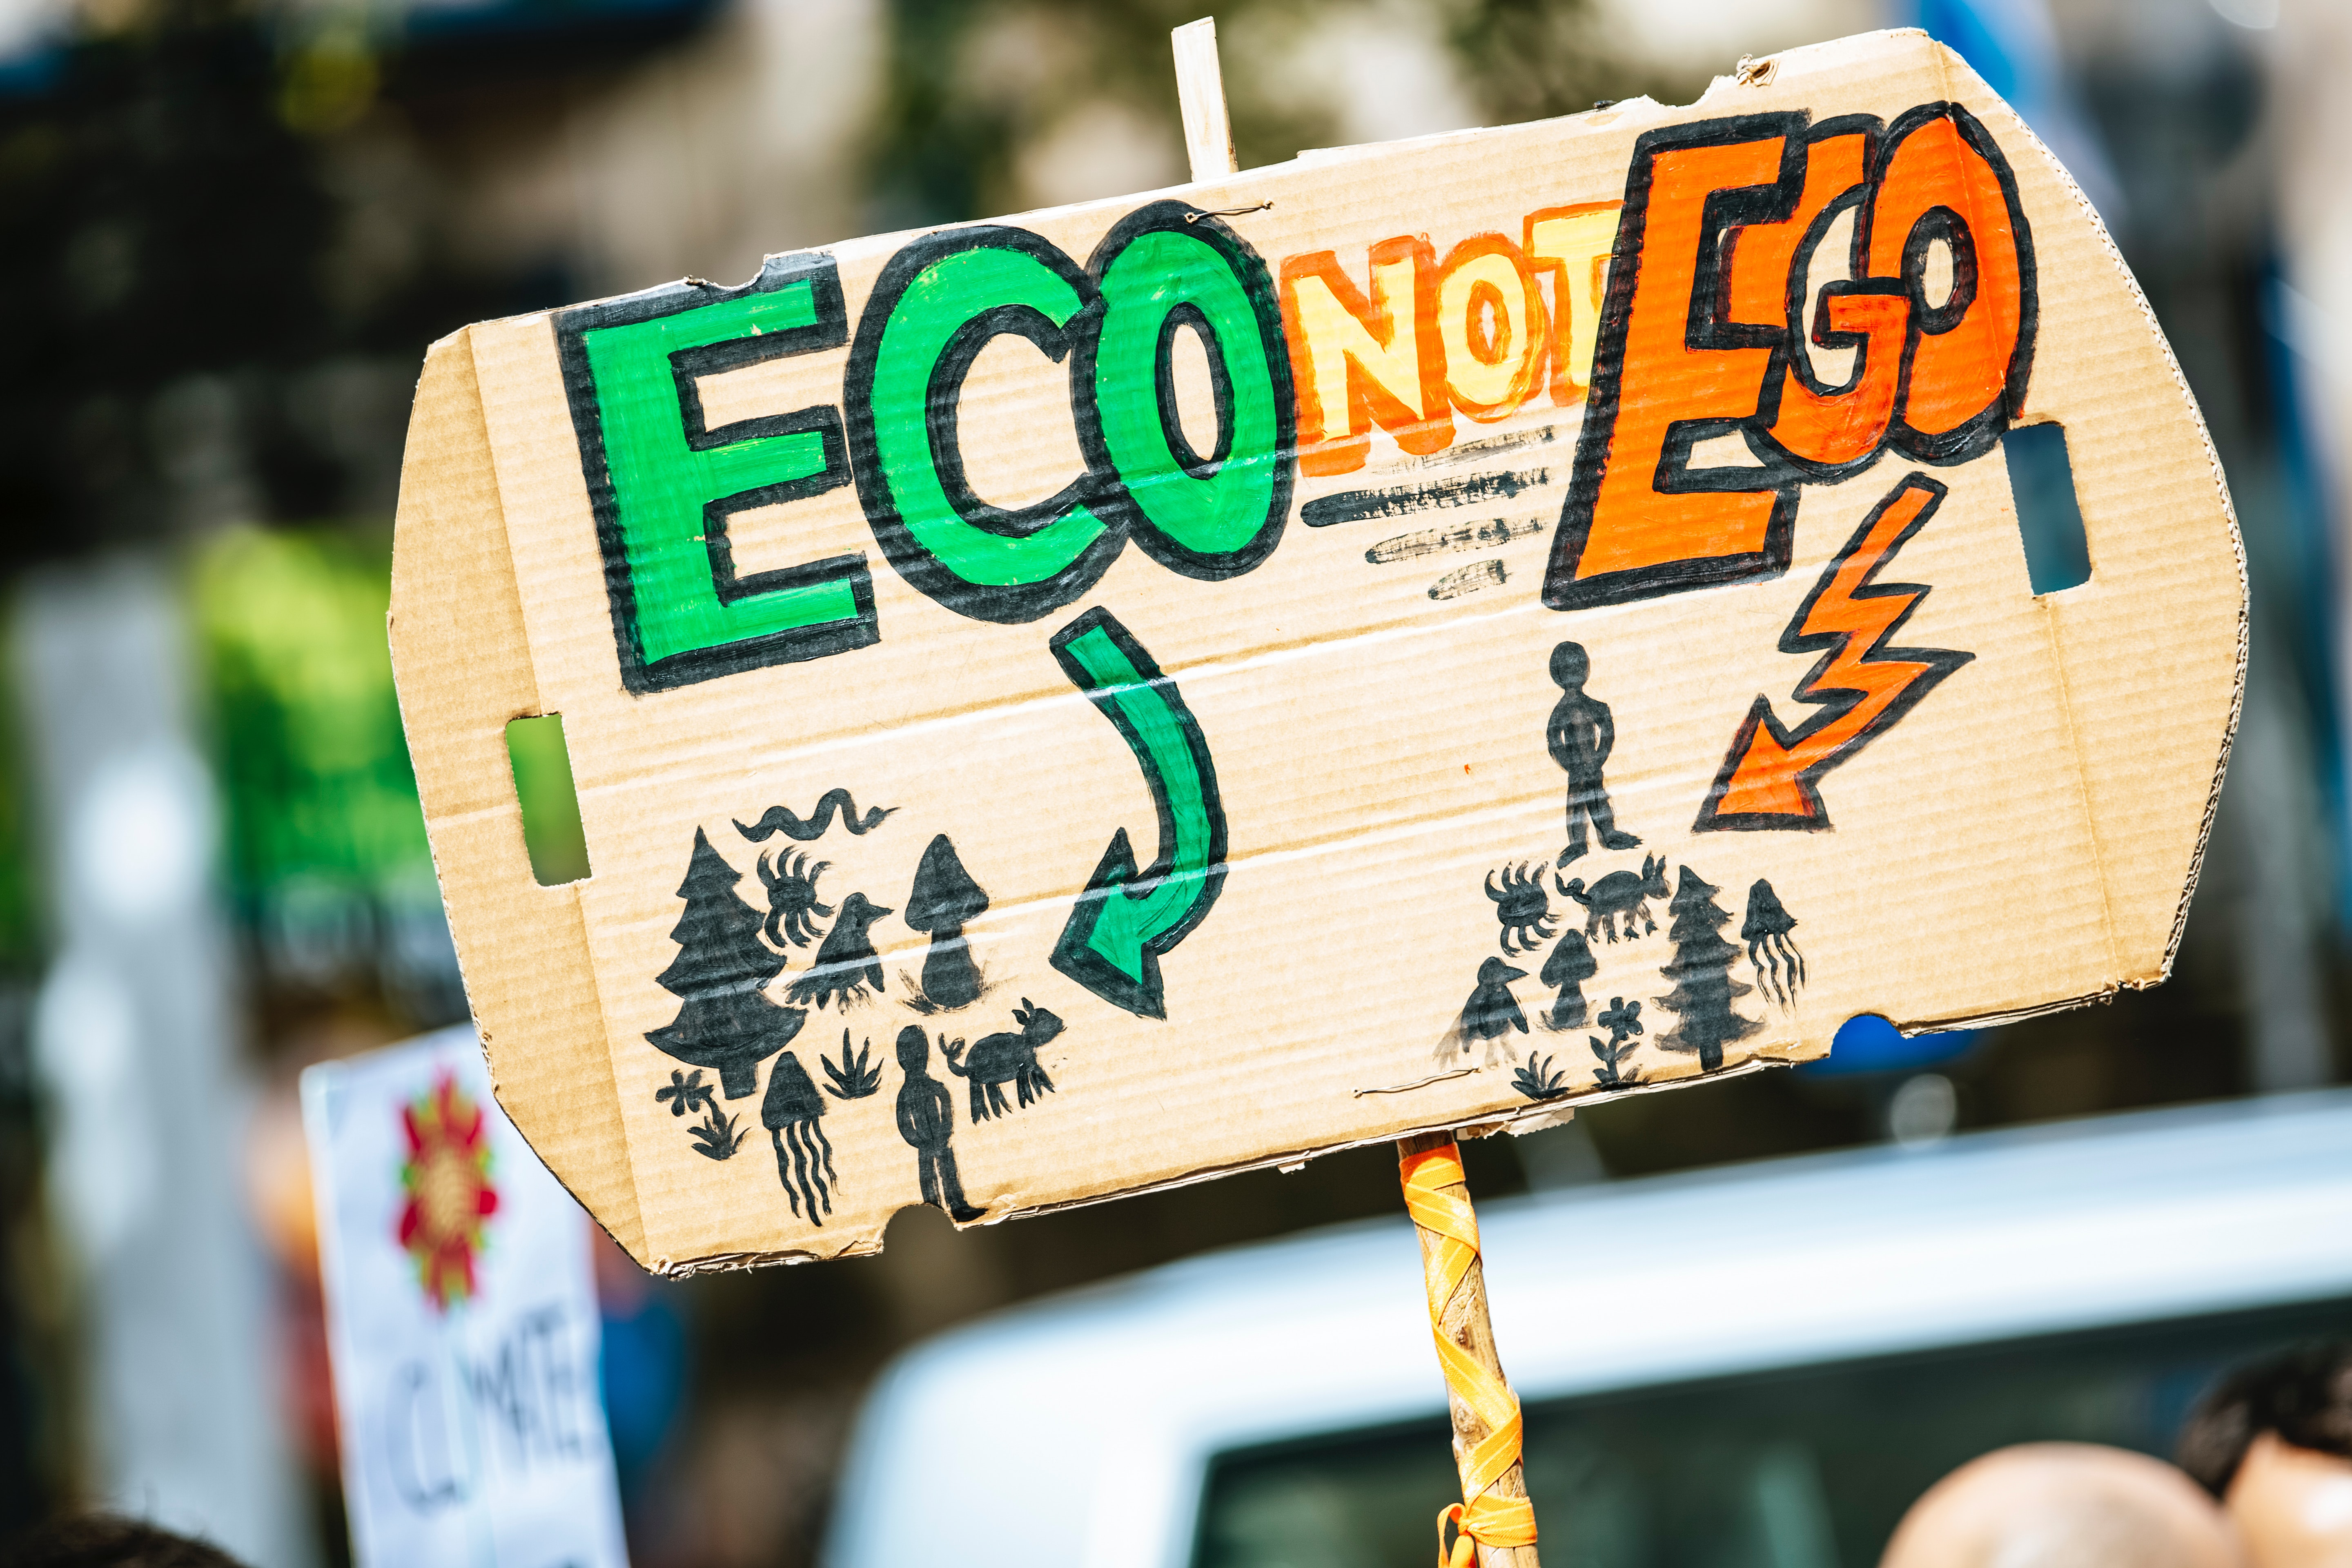 """A cardboard sign with the phrase """"Eco not ego"""" painted on it"""